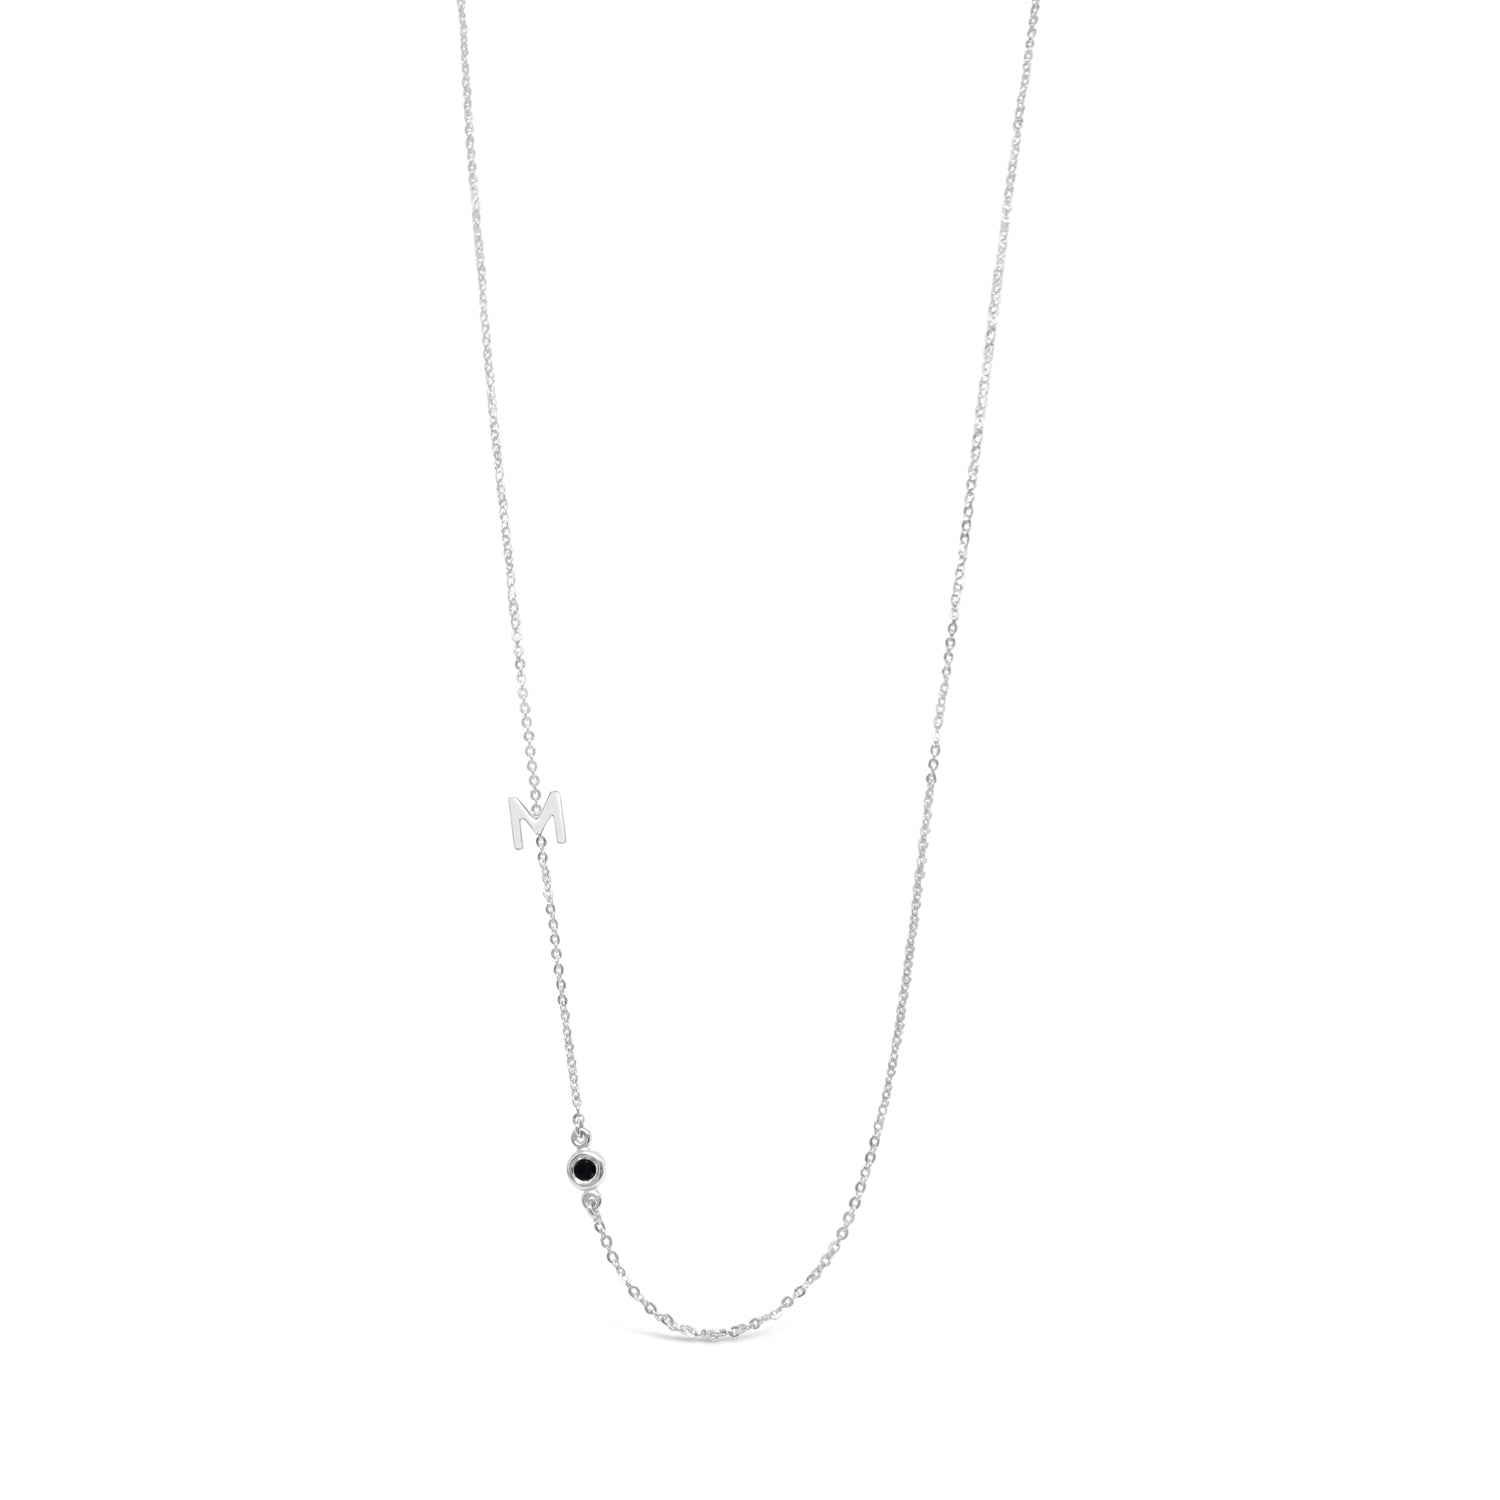 Black Diamond and Initial Necklace